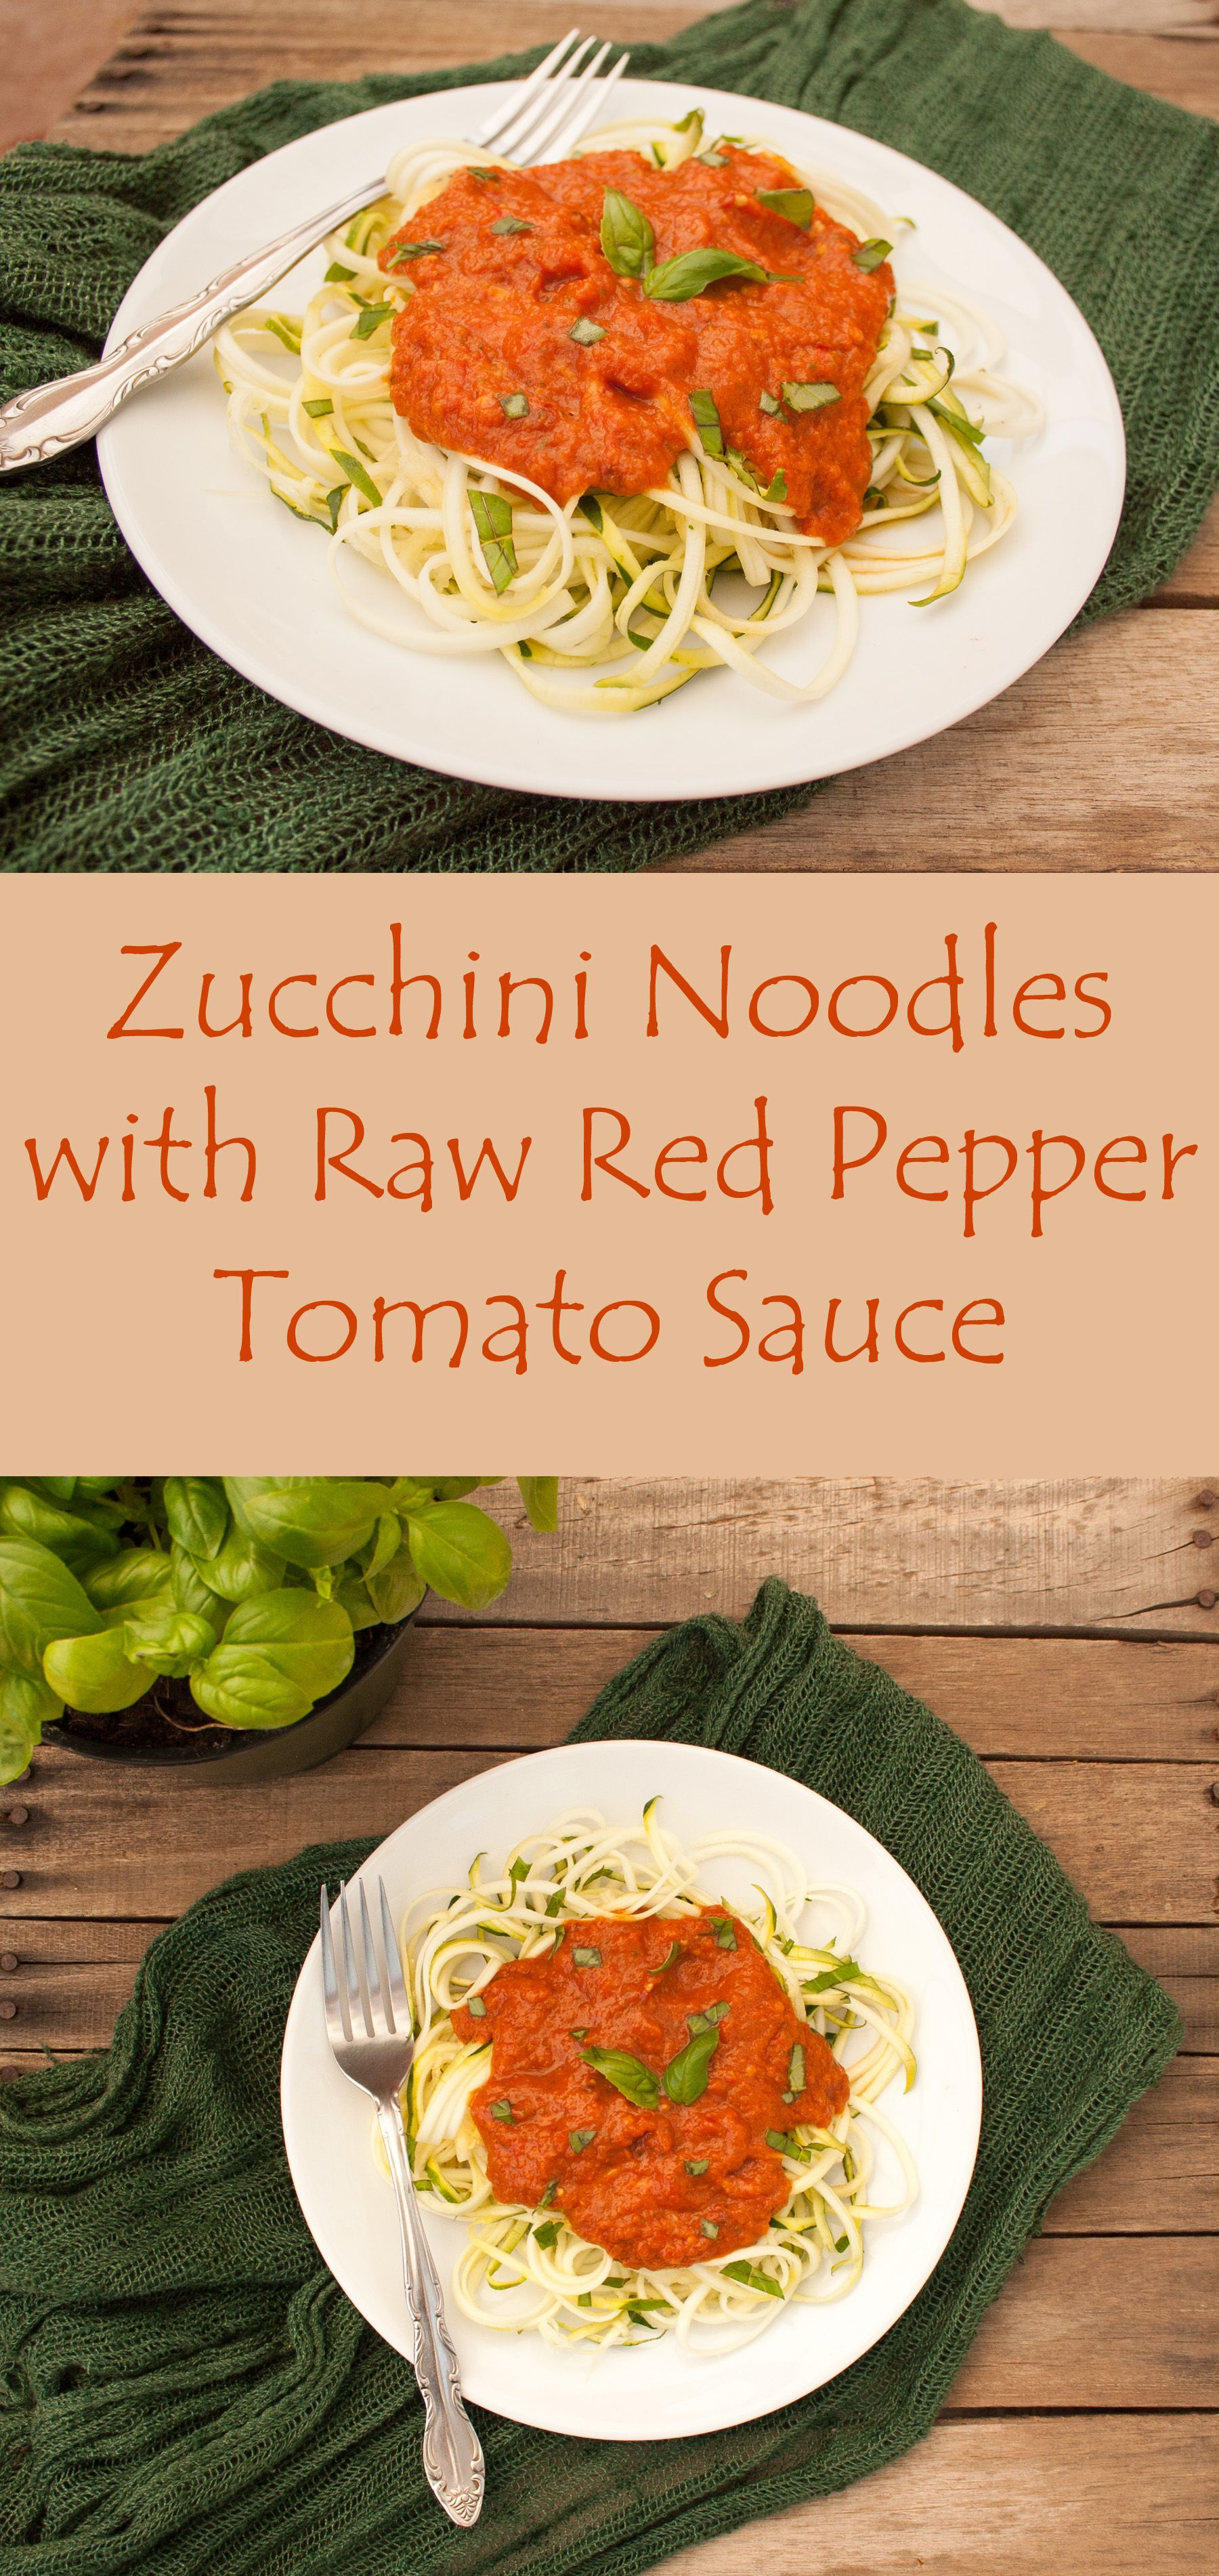 Zucchini Noodles With Raw Red Pepper Sauce This Raw Vegan